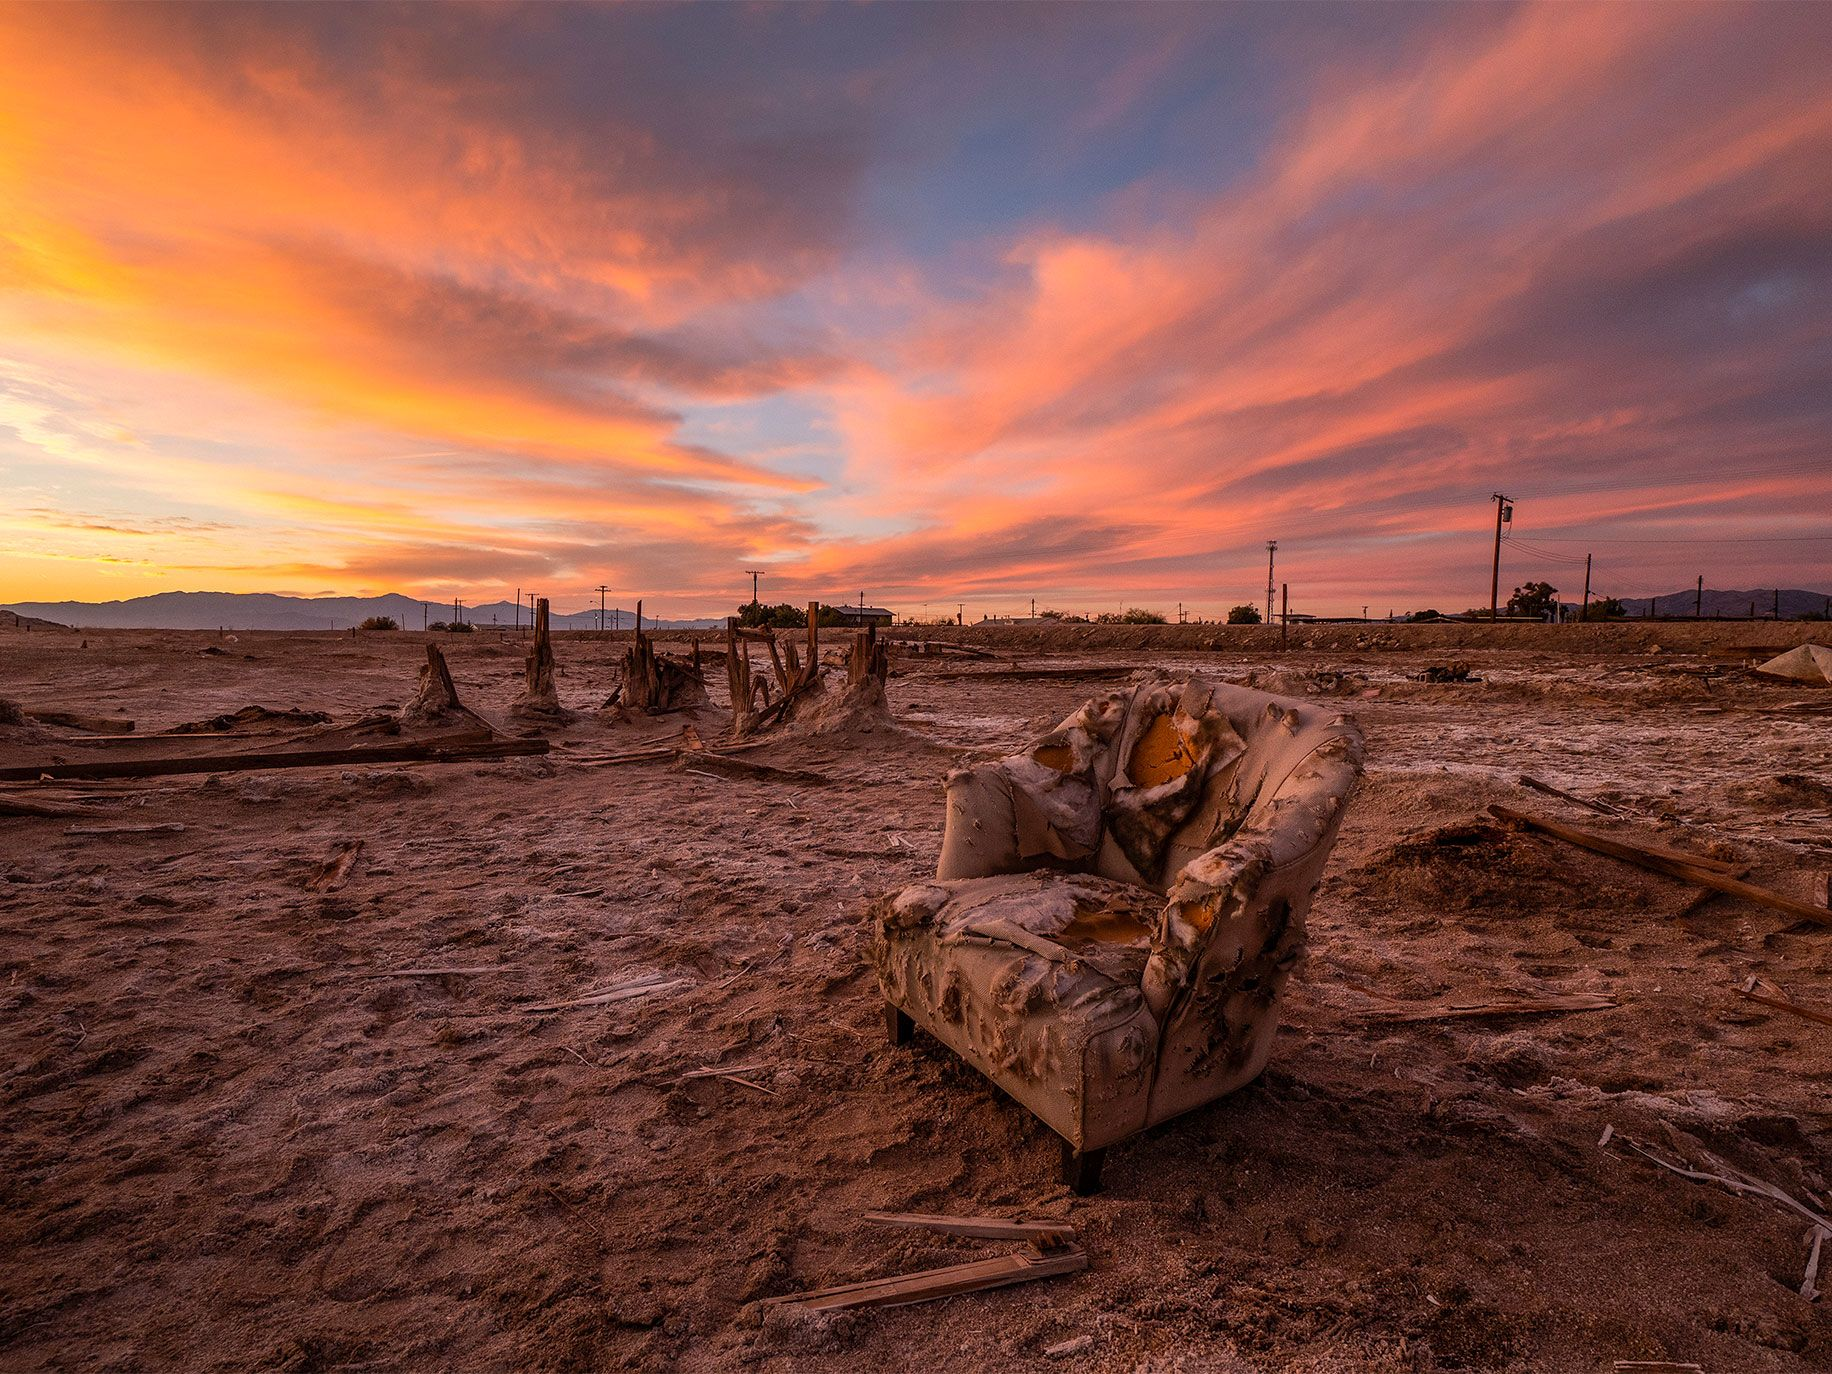 Bombay Beach, devastated by two hurricanes that raised the level of the Salton Sea during the 1970s, has become a popular, if unlikely, destination for art tourism.